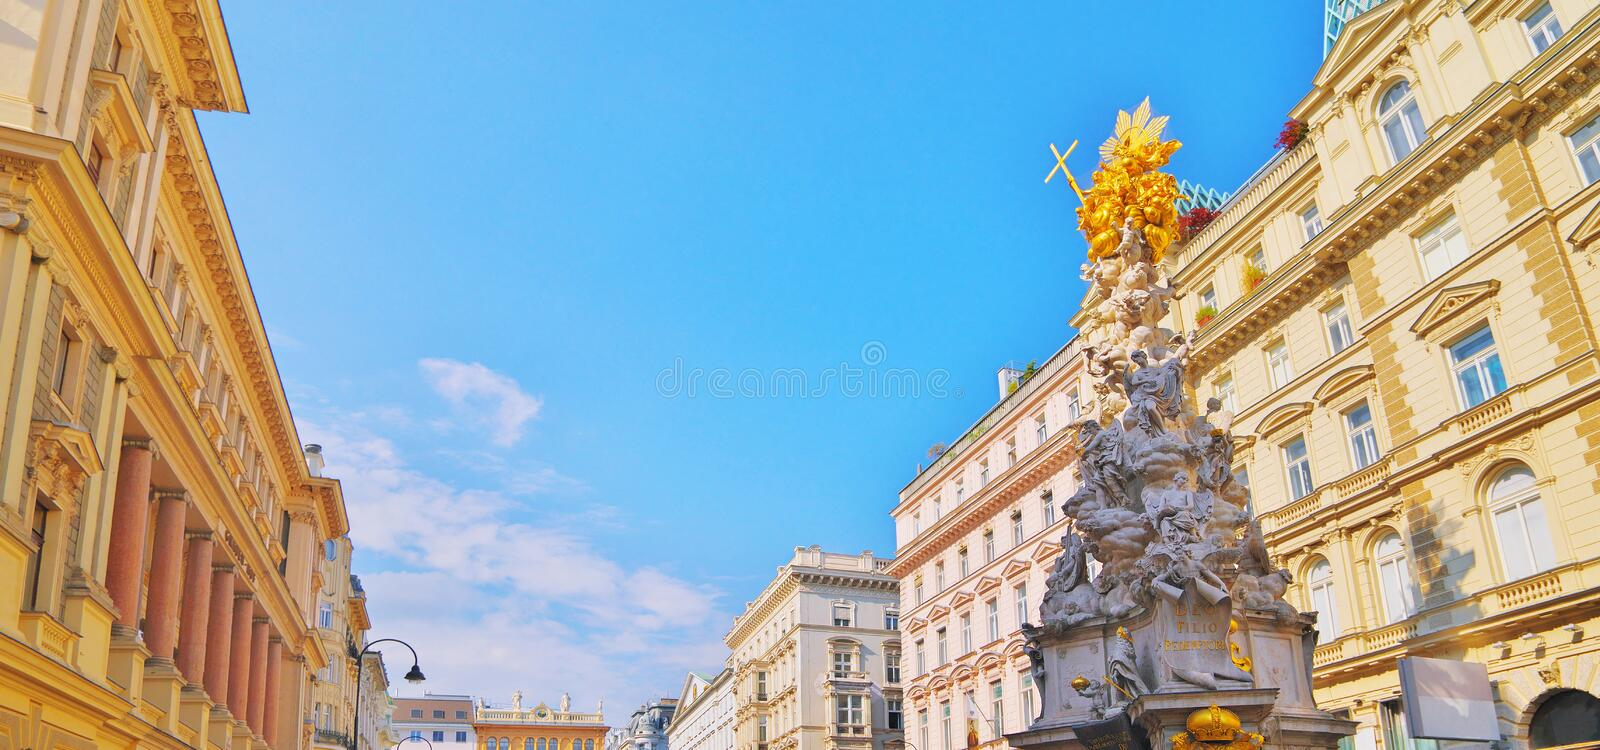 Pestsaule on Graben, a famous pedestrian street of Vienna with a Memorial Plague Column. old town main street in Vienna, capital stock photo